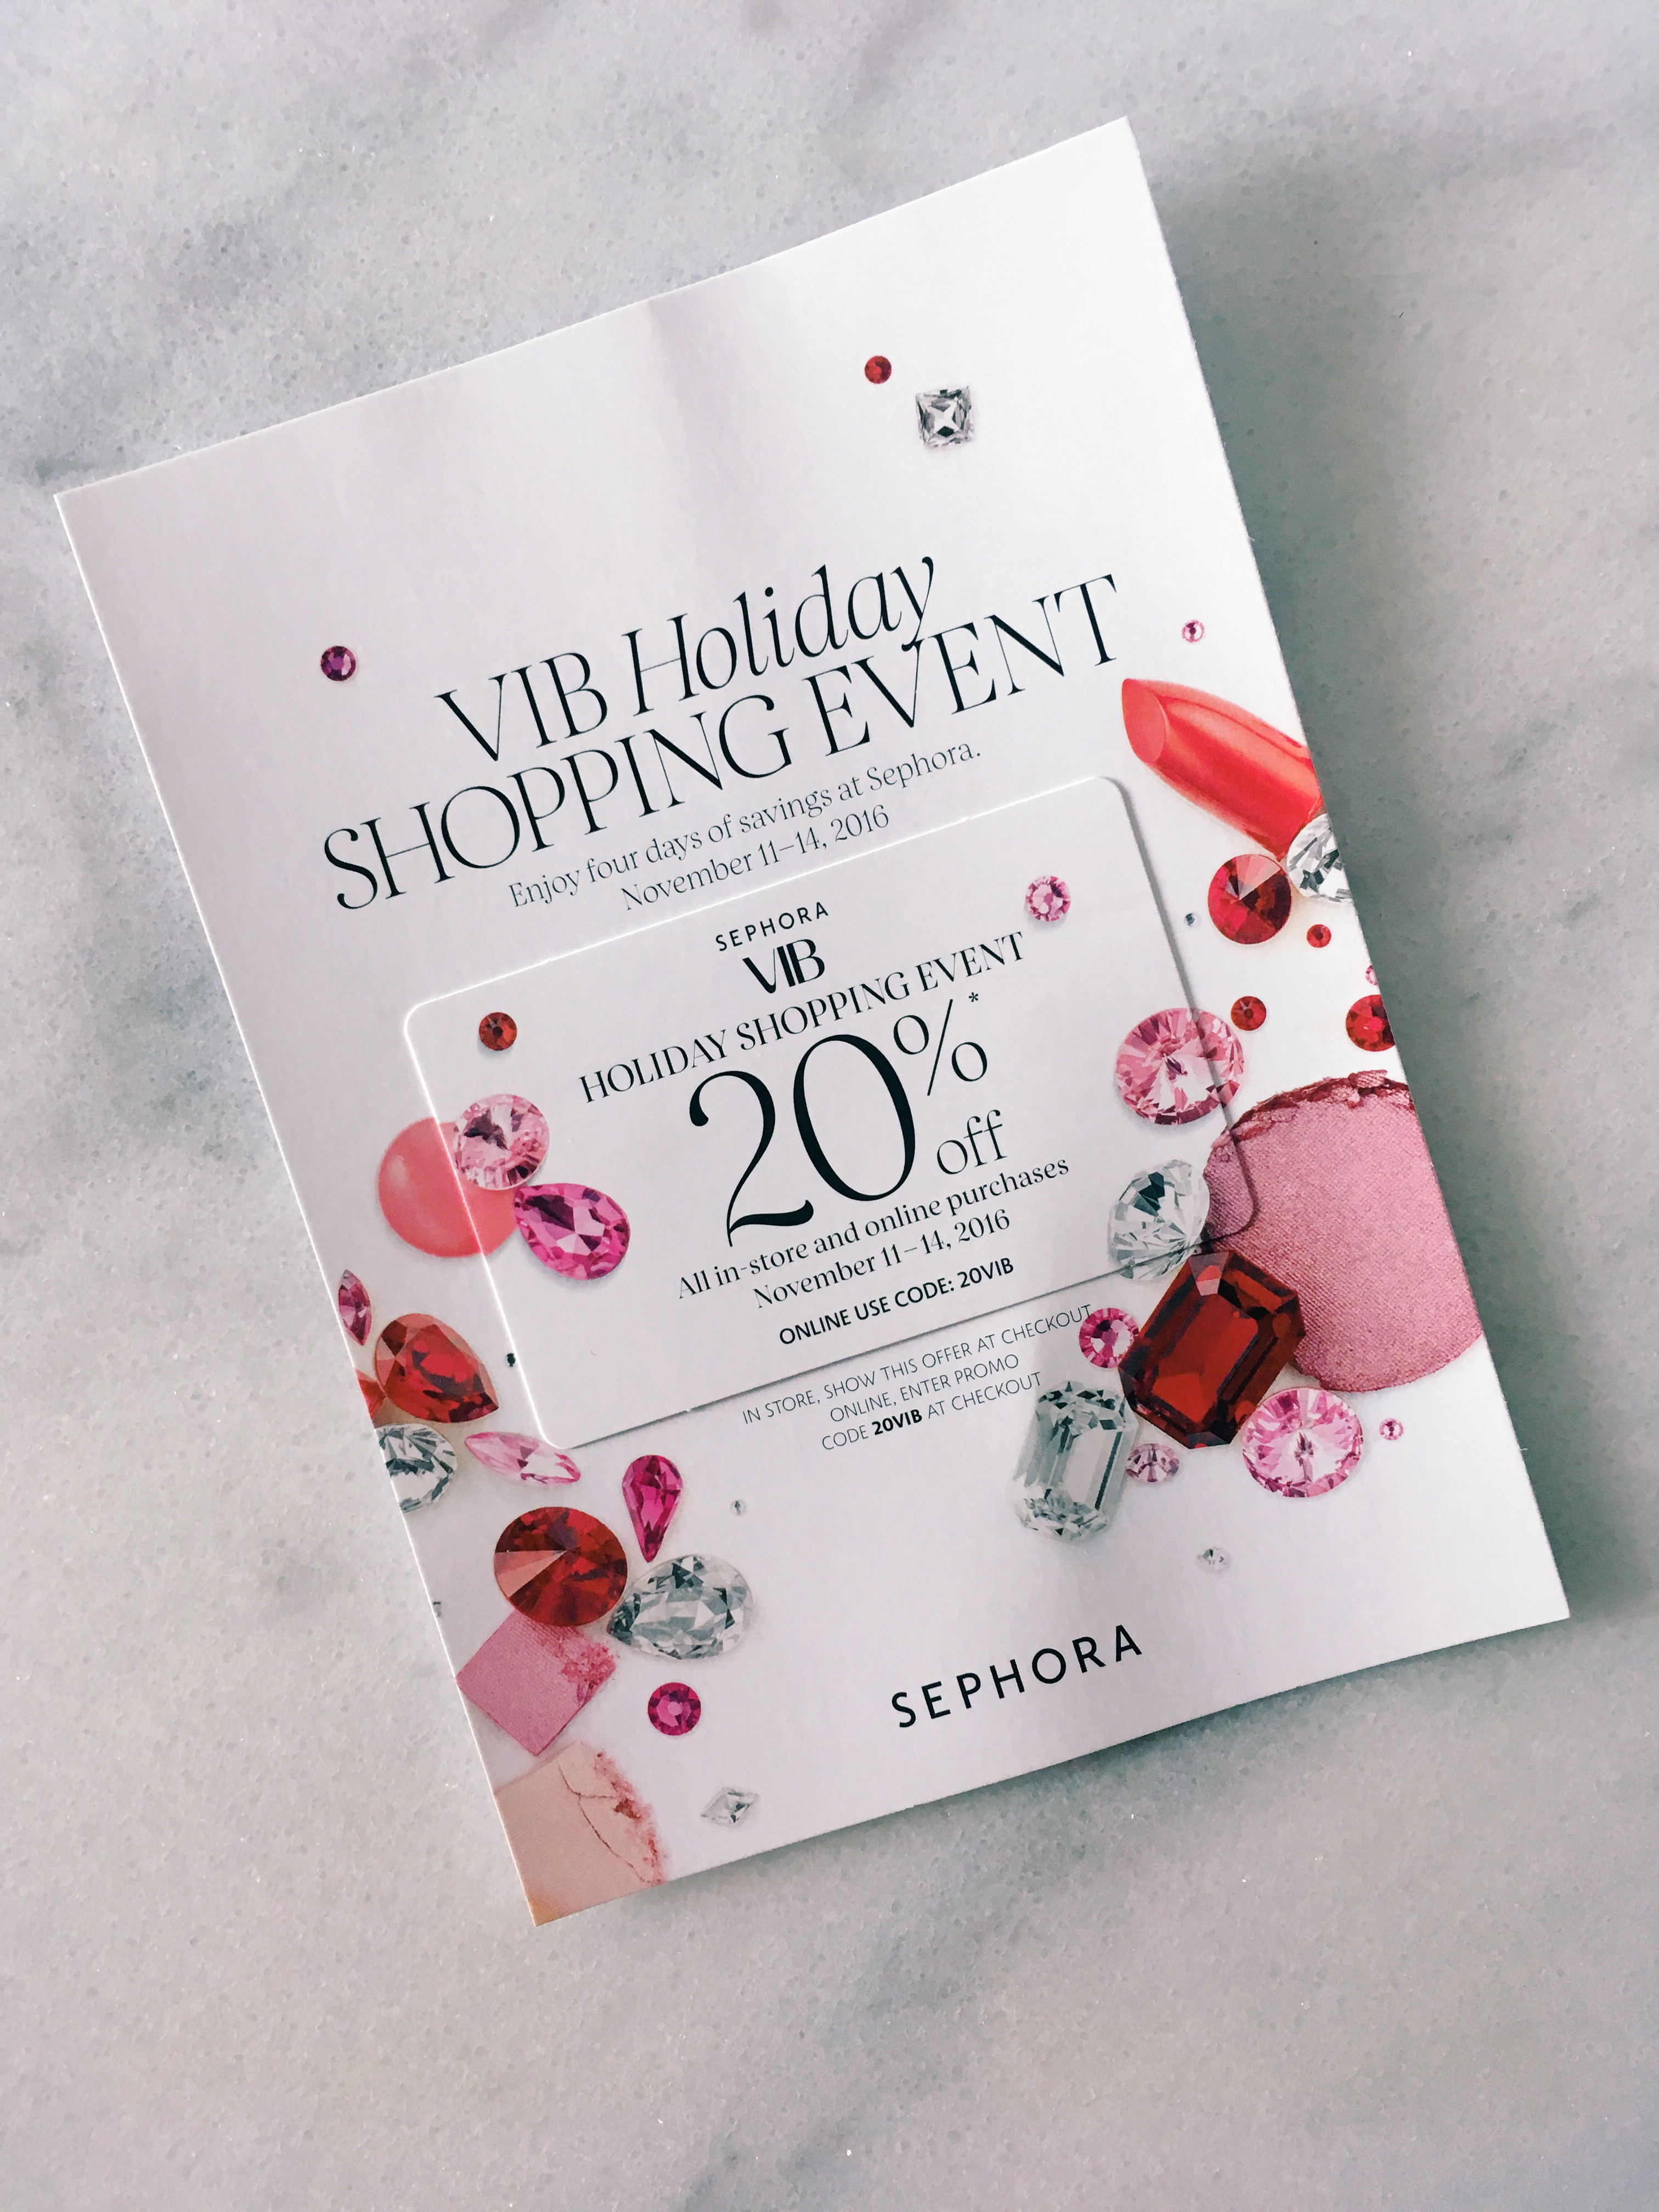 Sephora VIB Holiday Shopping Event 2016